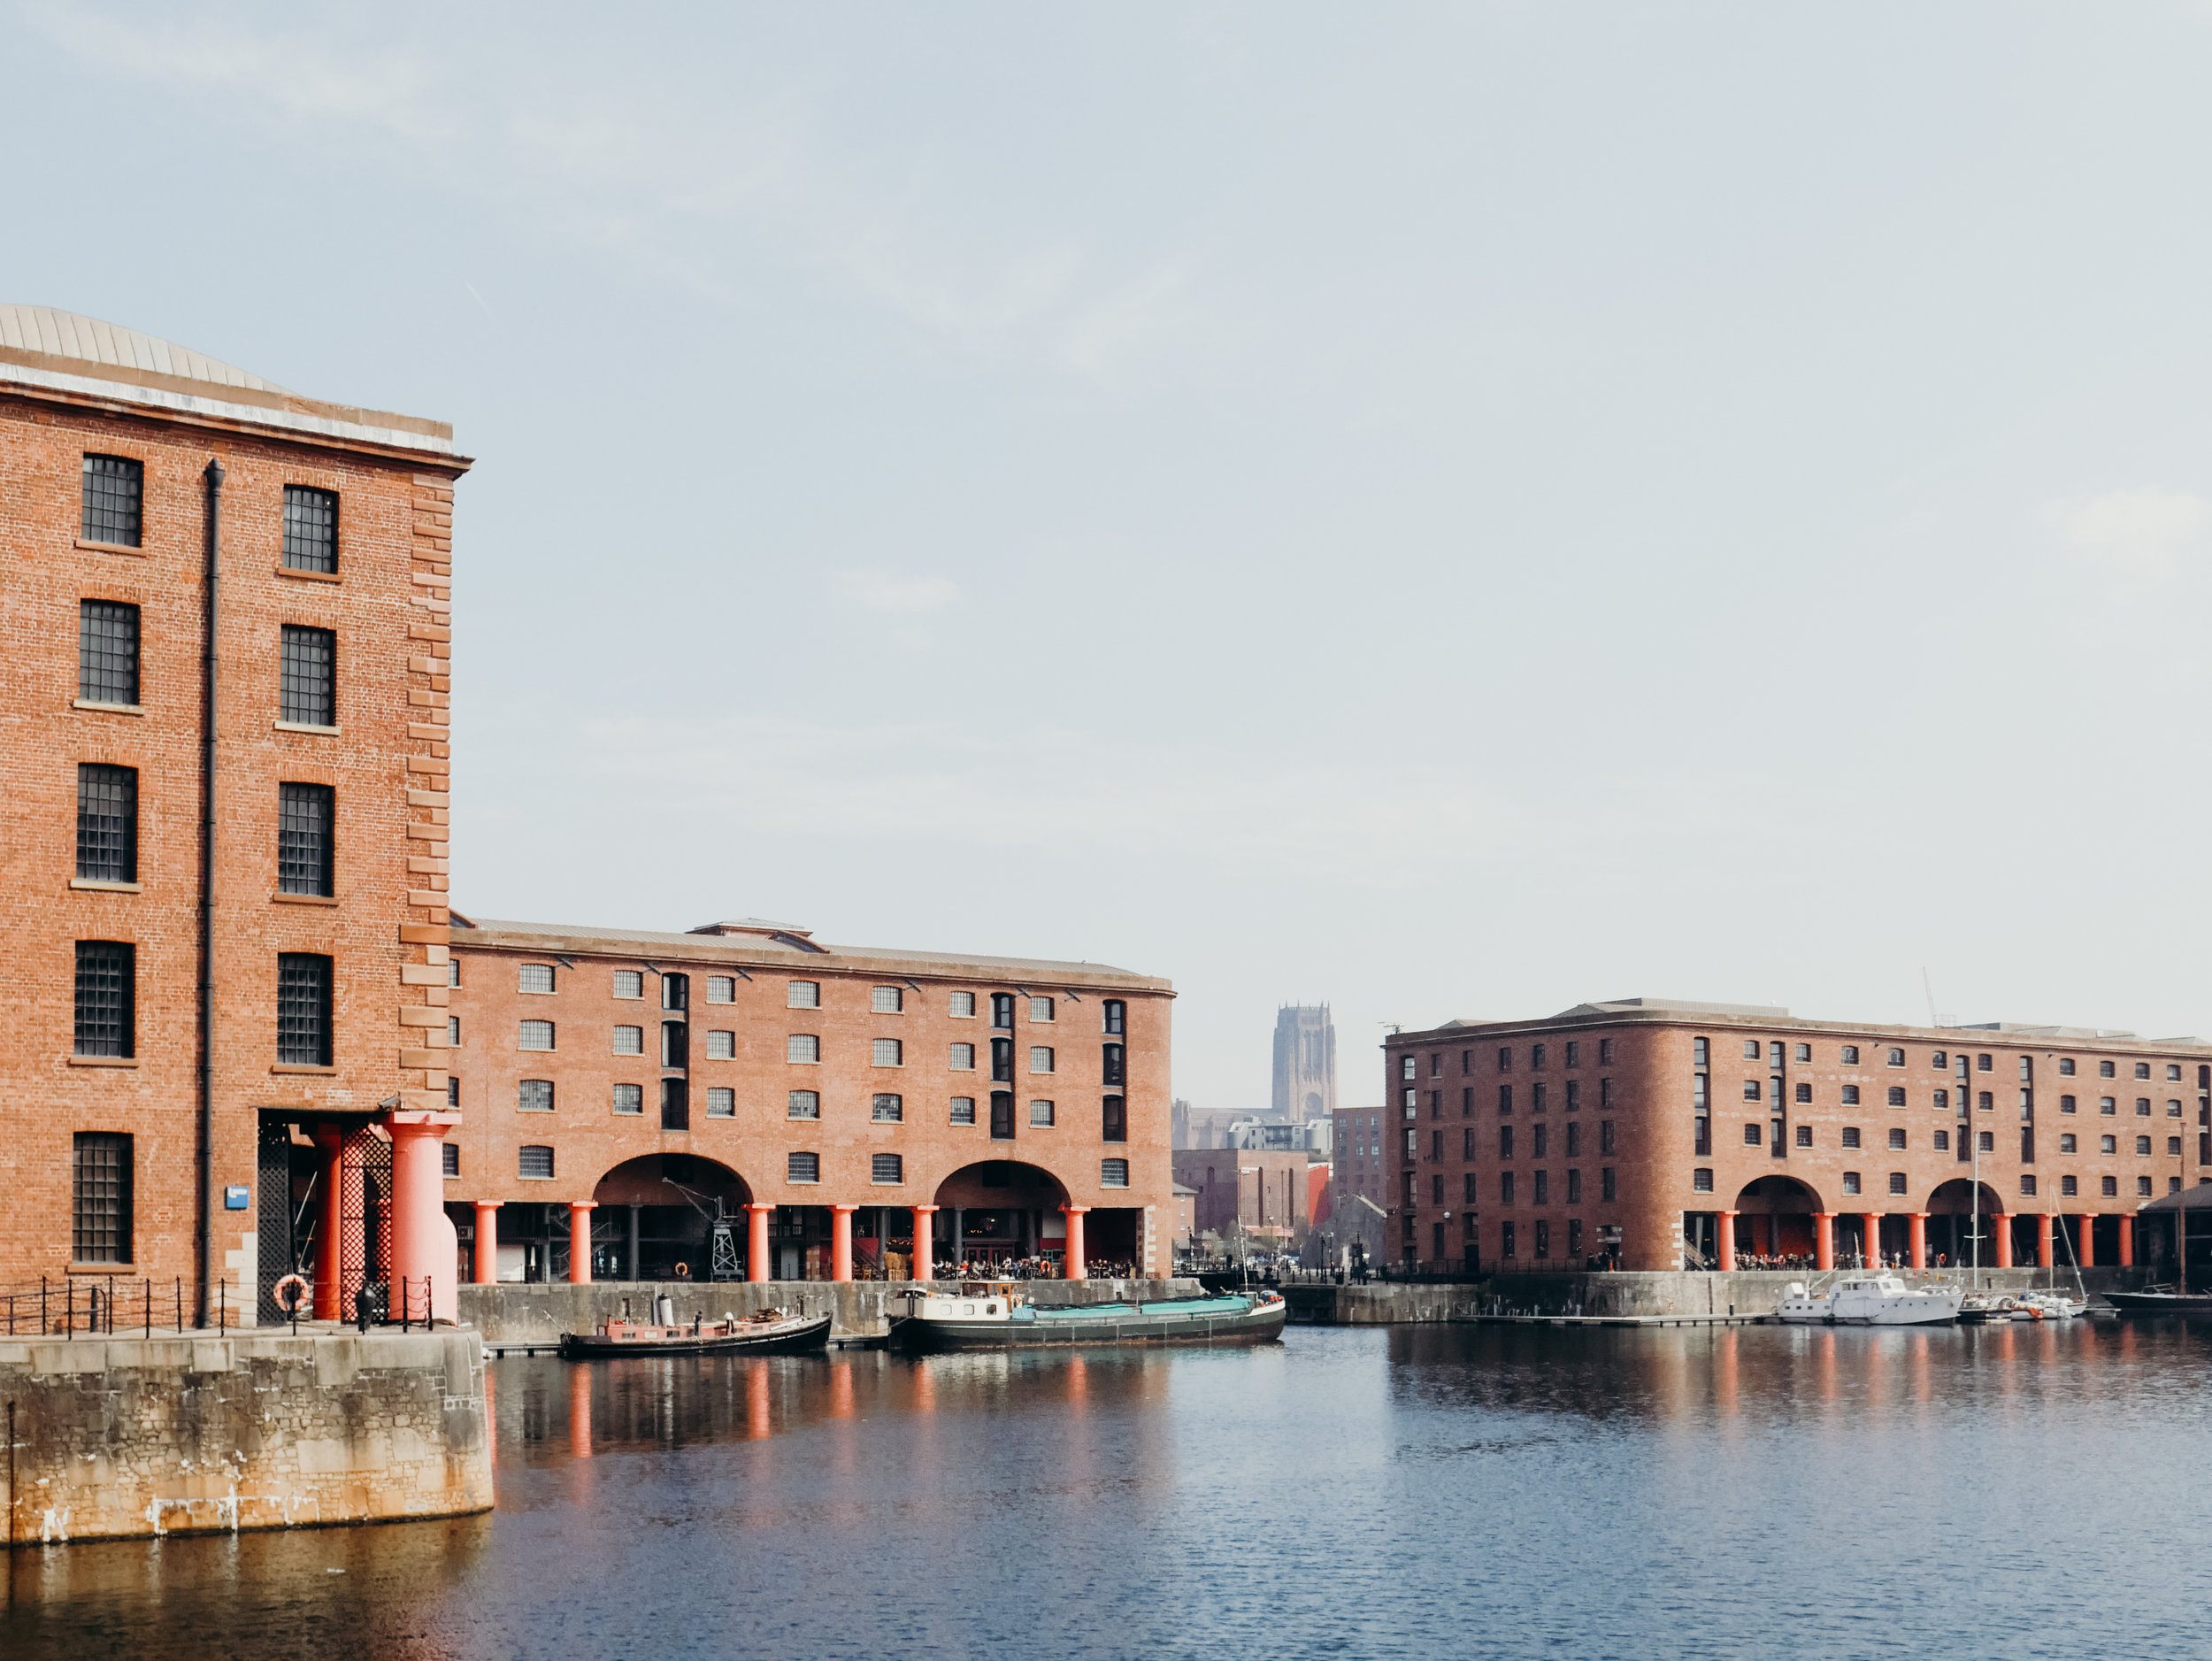 Royal Albert Dock Liverpool